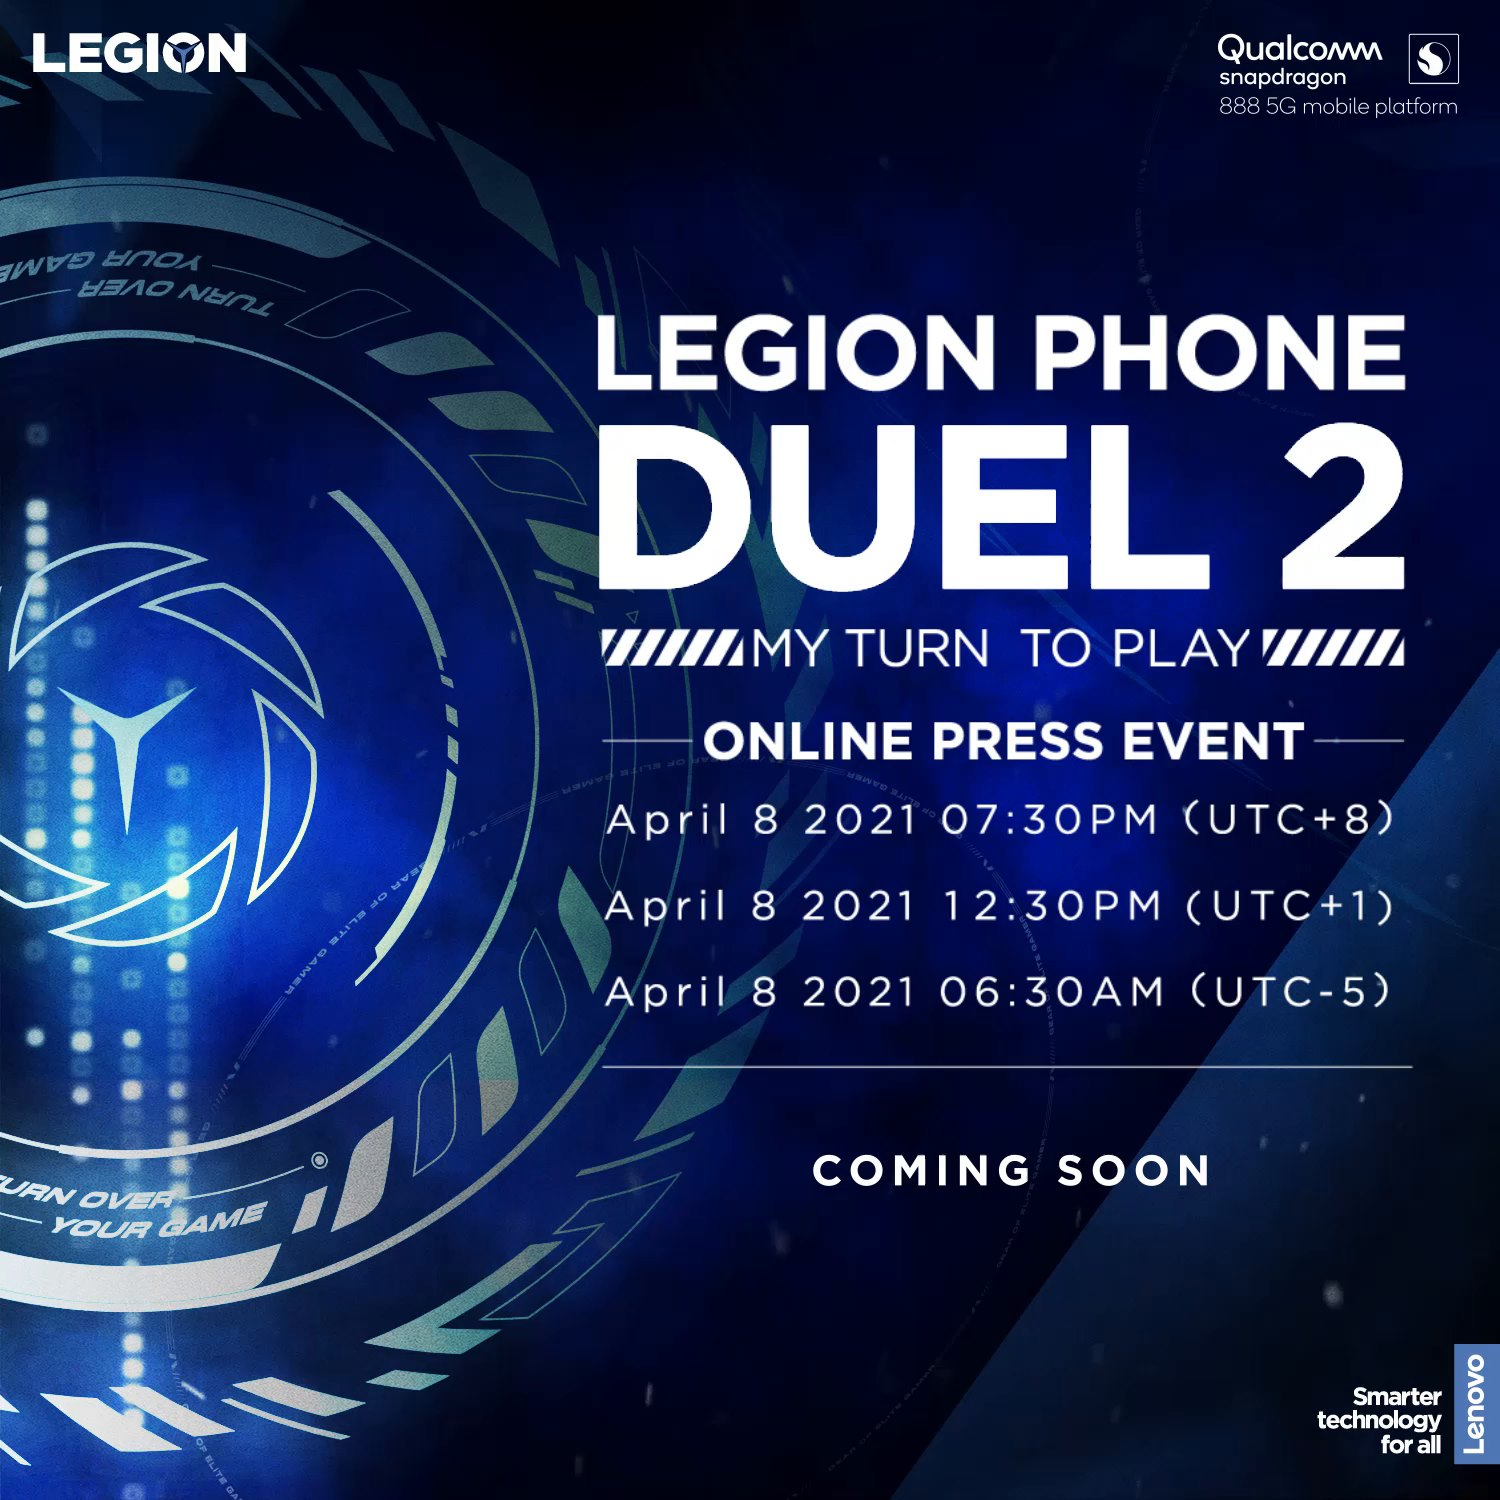 One more week....we can't wait to show you the revolutionary Legion Phone Duel 2 ! Stay tuned for our big announcement on April 8th. Now, it's MY TURN TO PLAY.  Learn more here>>>